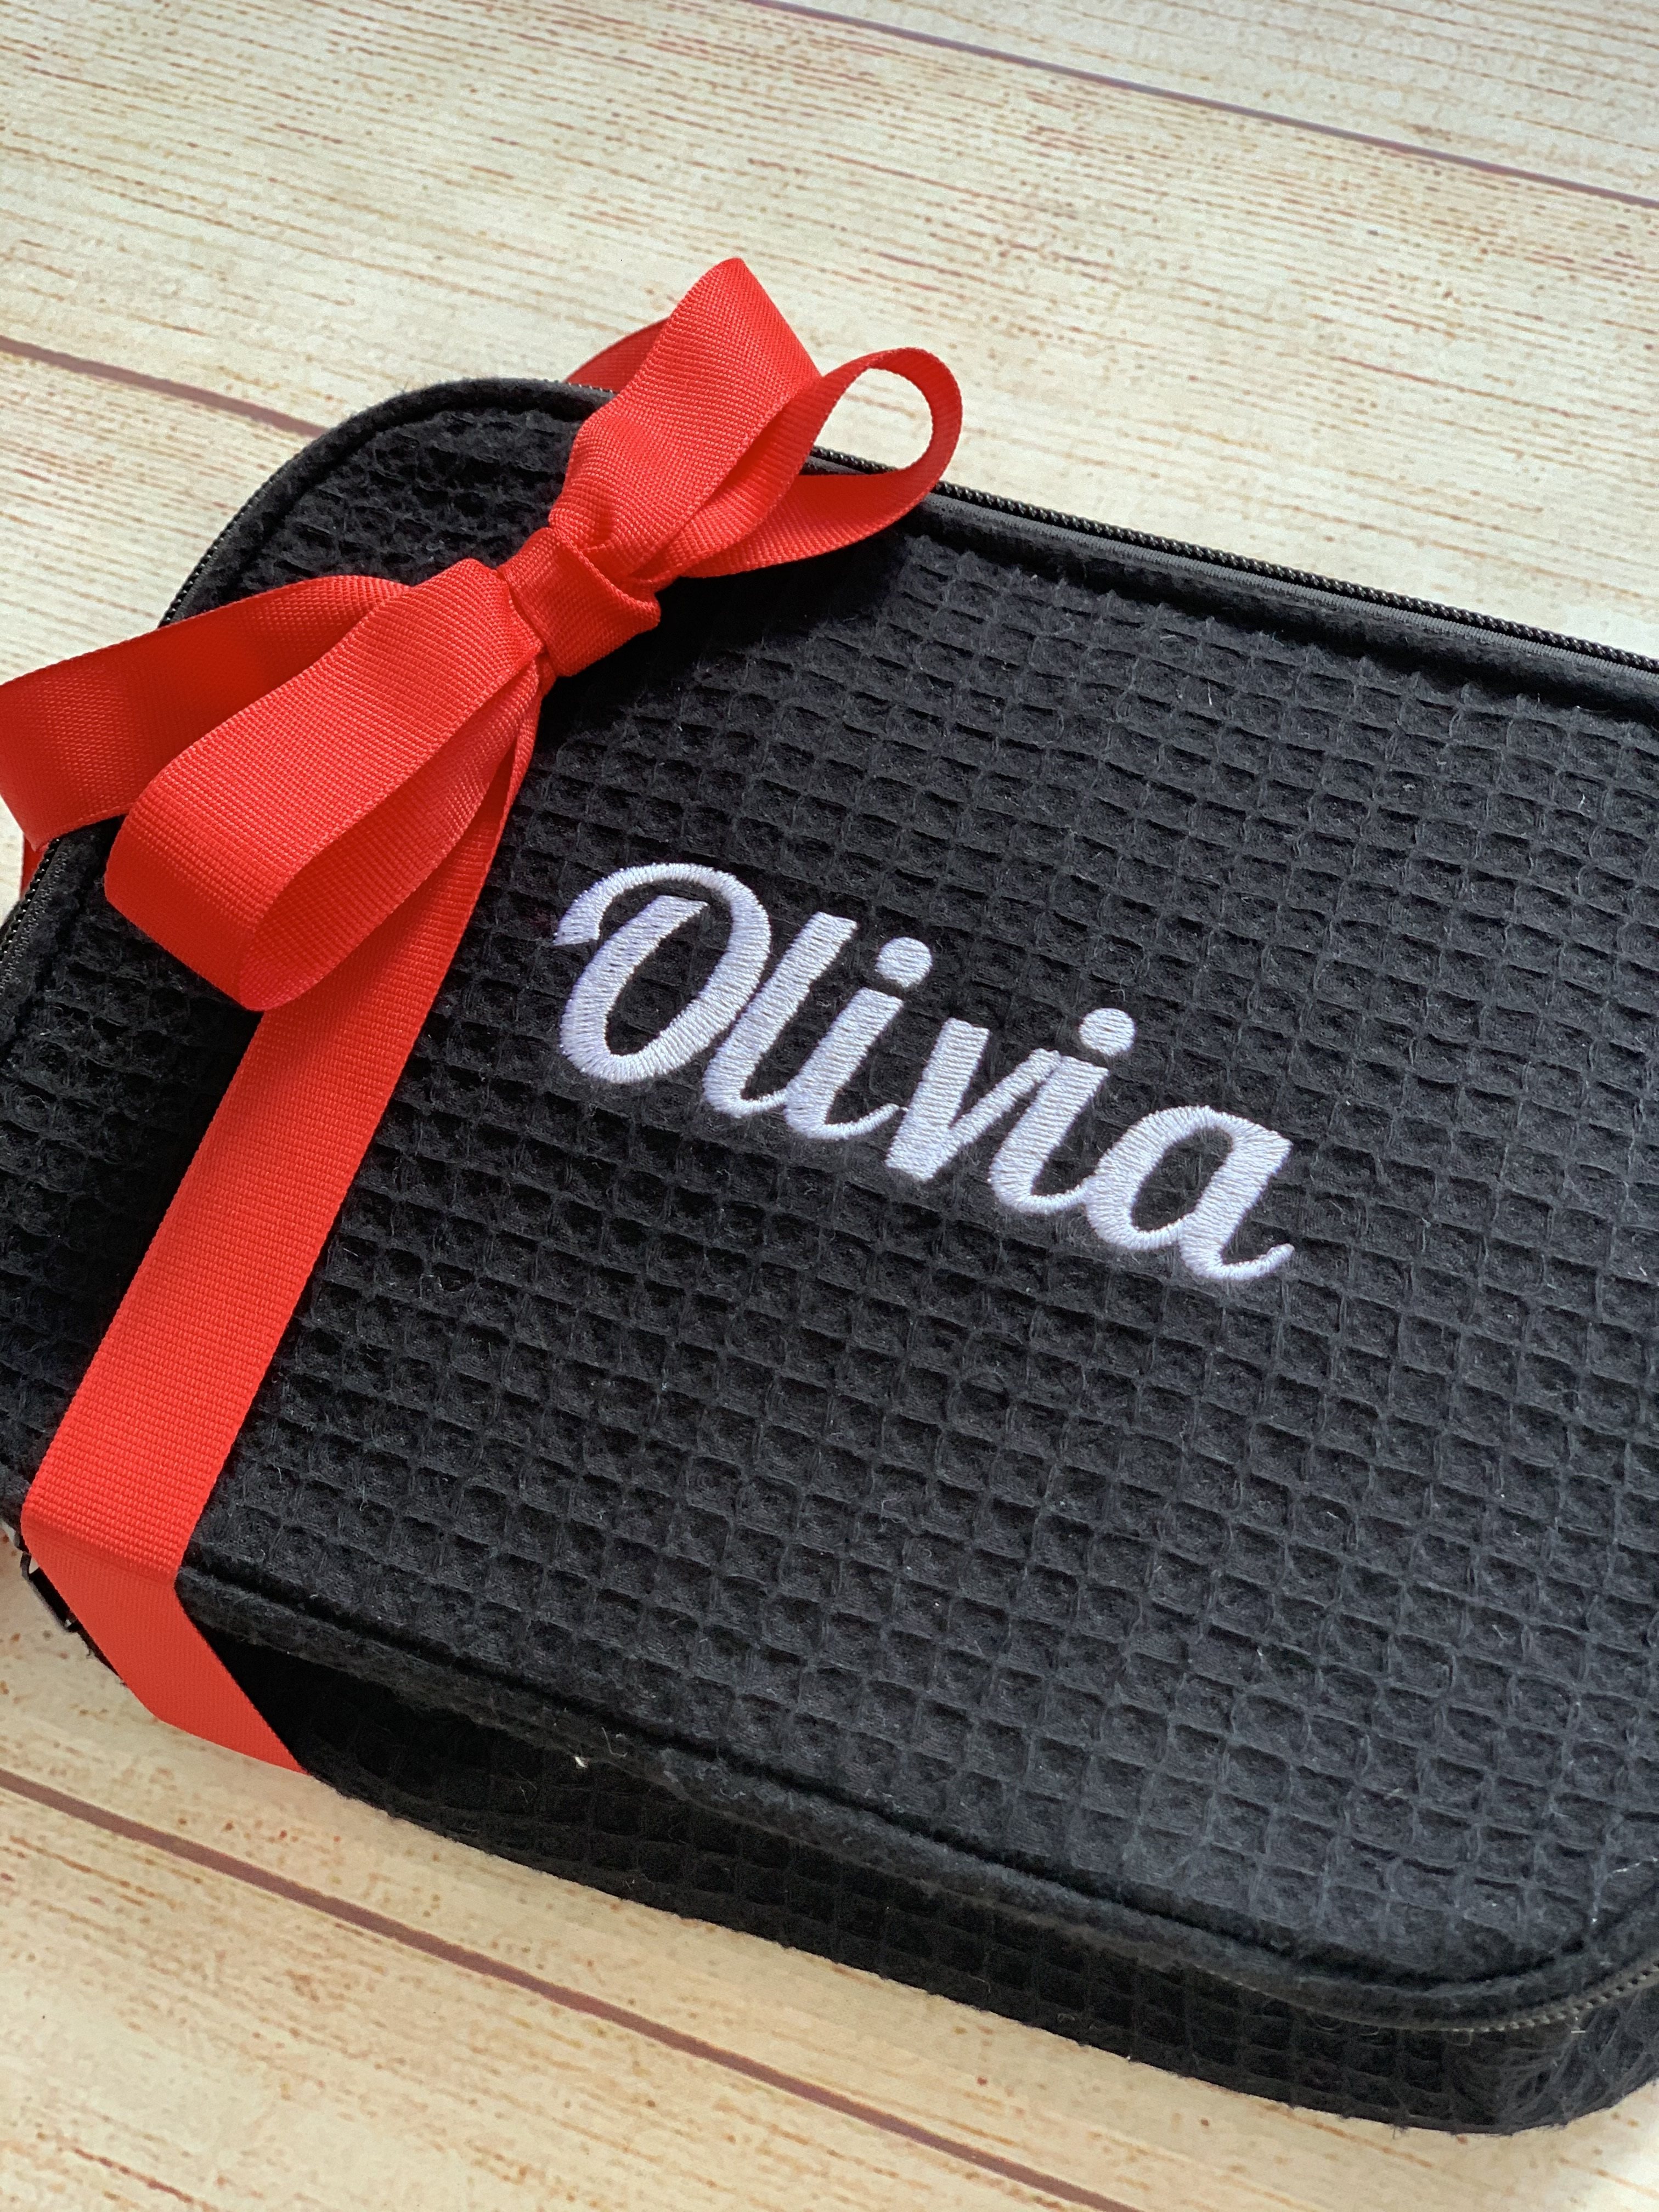 College Cosmetic Case expertly embroidered by Wicked Stitches Gifts